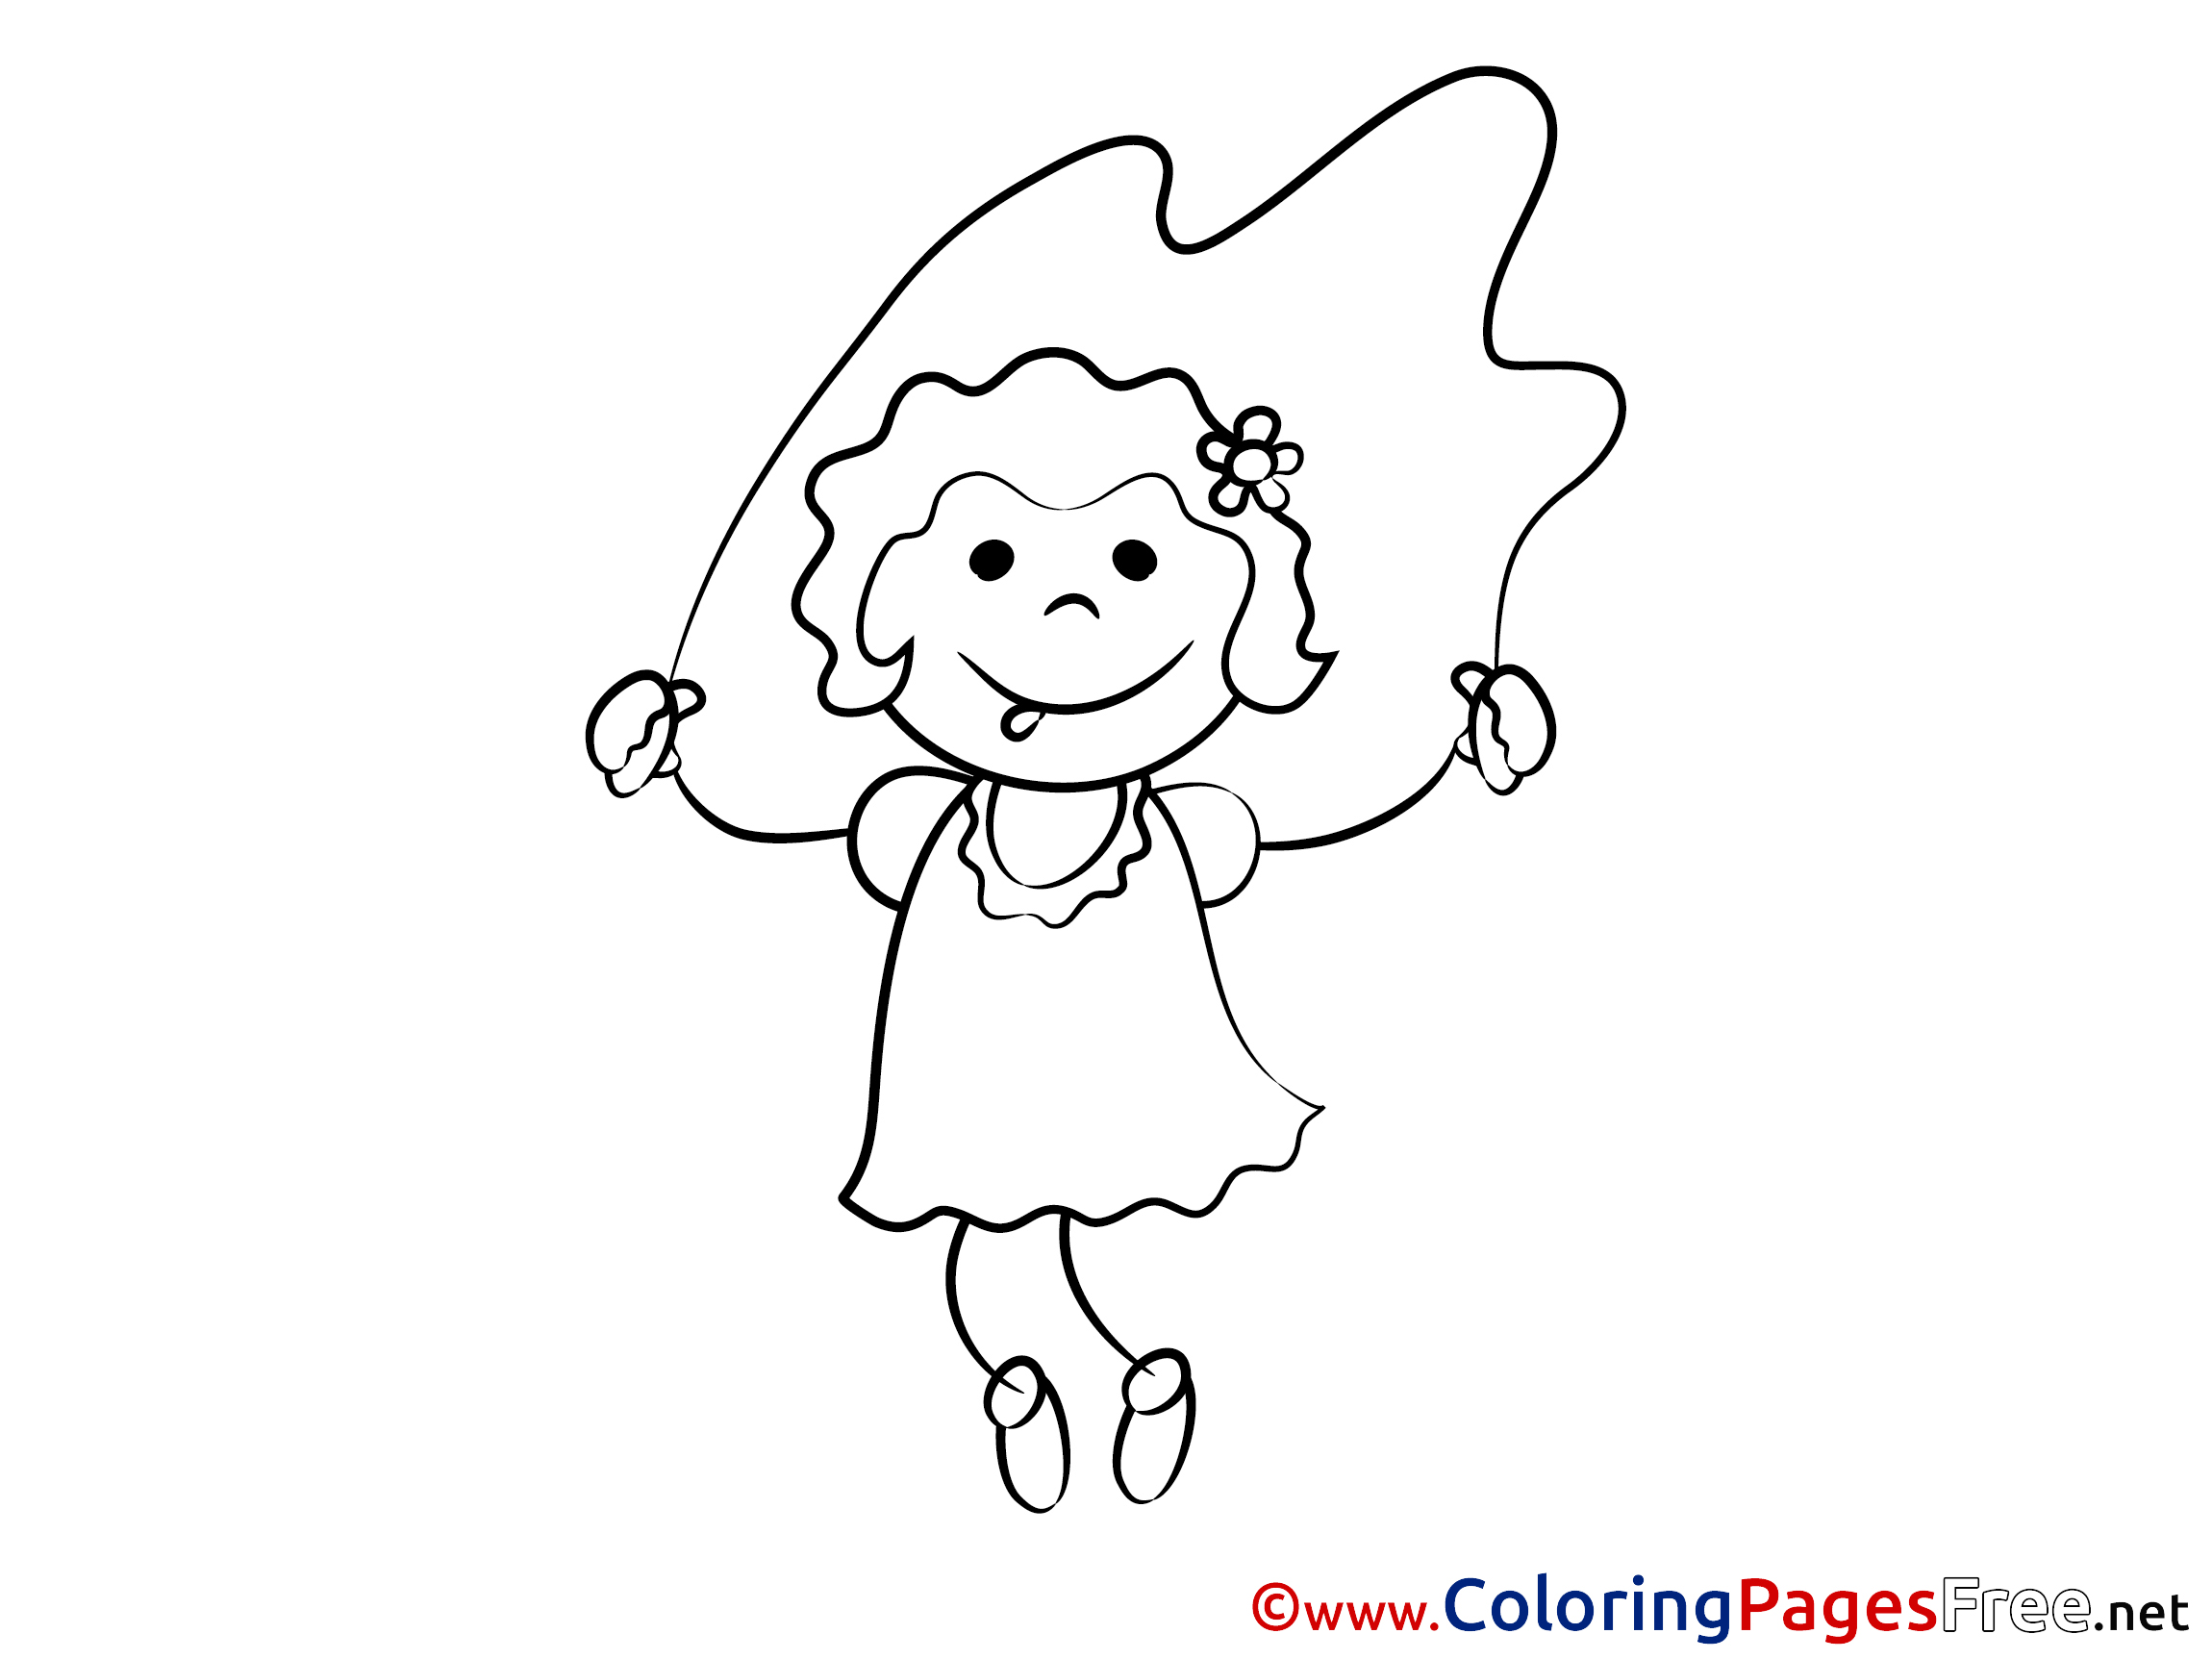 m/02csf Dress Drawing Line art, girl jumping rope coloring pages ... | 1725x2300